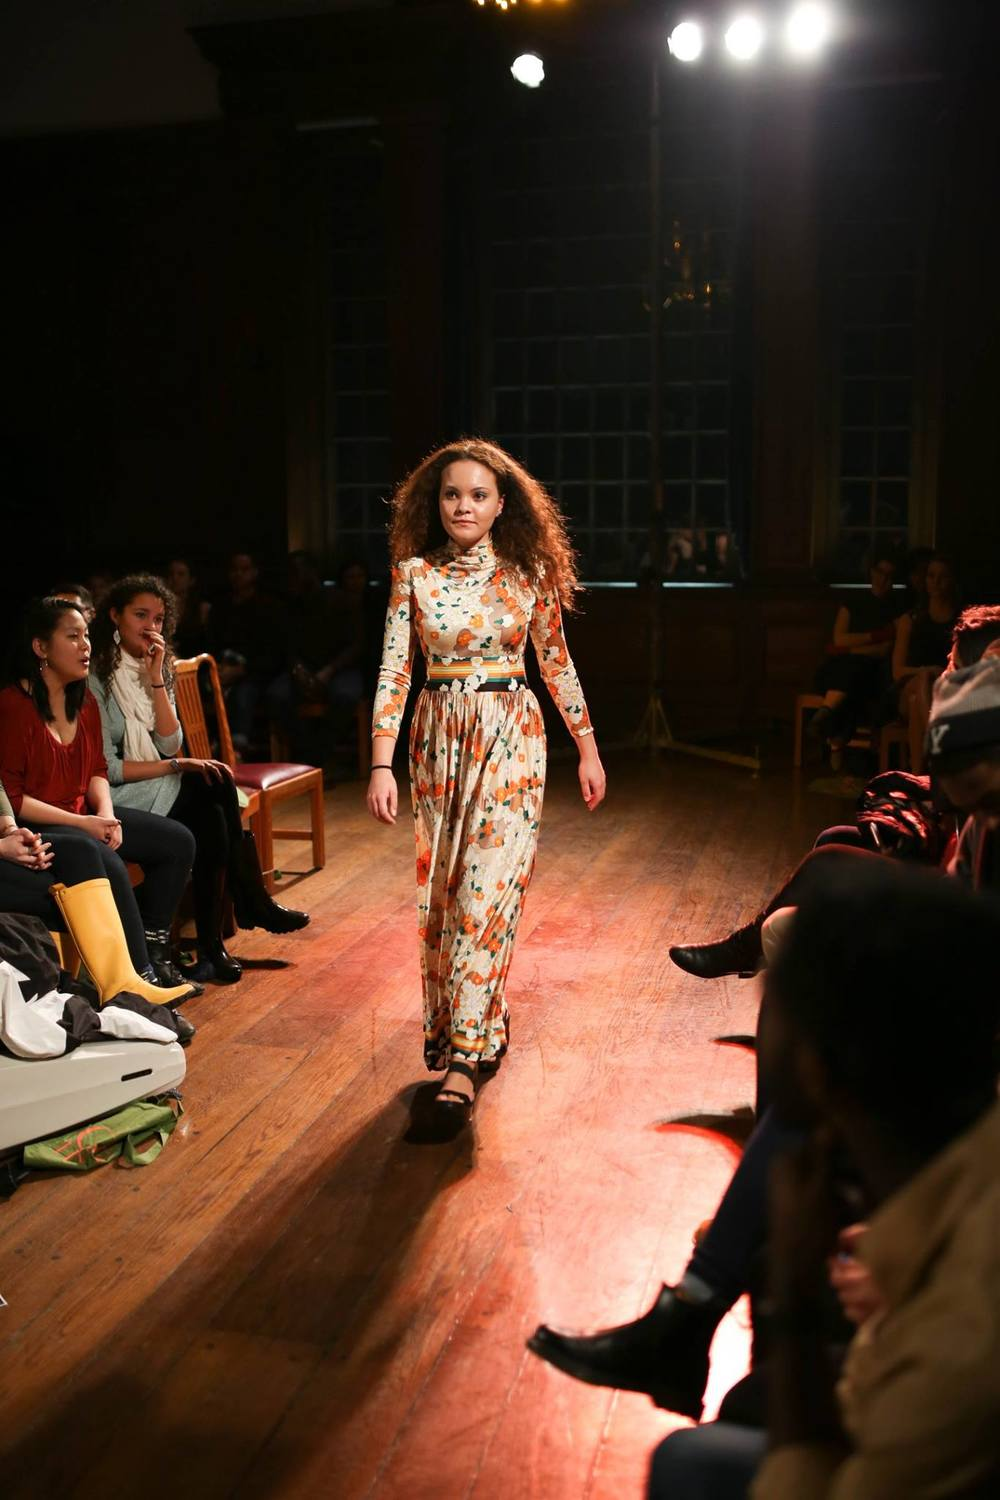 yale_Y_fashion_house_fashion_show_vintanthromodern_4.jpg